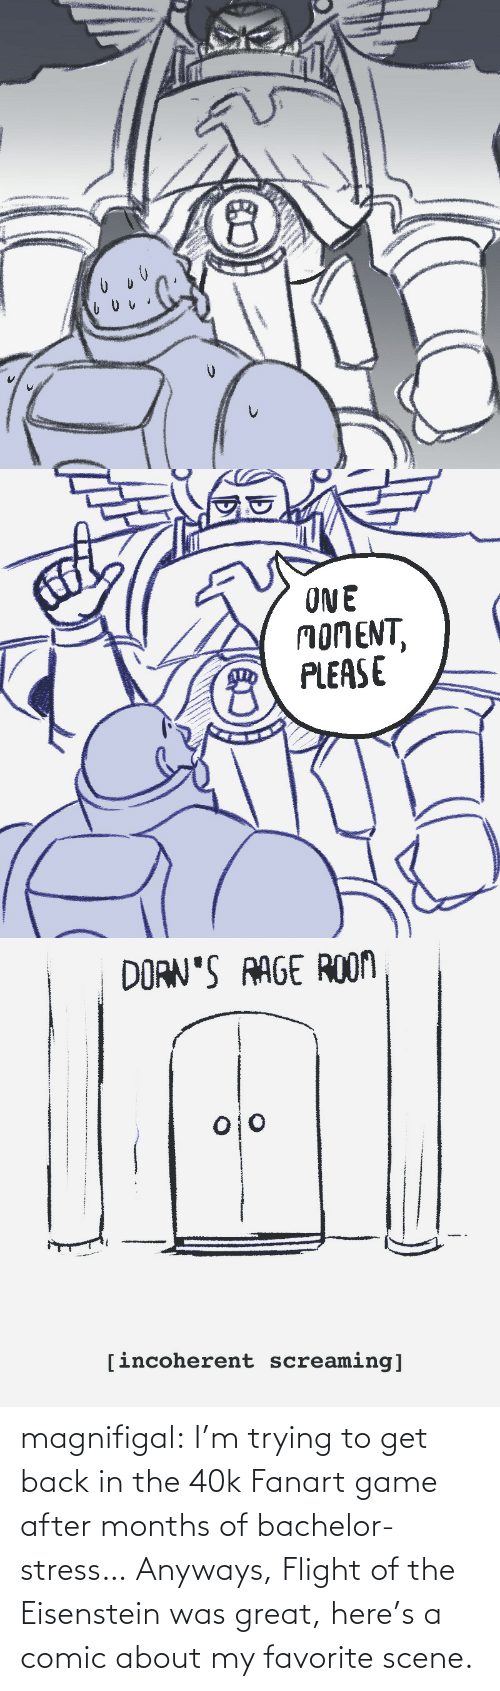 Im Trying: magnifigal:  I'm trying to get back in the 40k Fanart game after months of bachelor-stress… Anyways, Flight of the Eisenstein was great, here's a comic about my favorite scene.